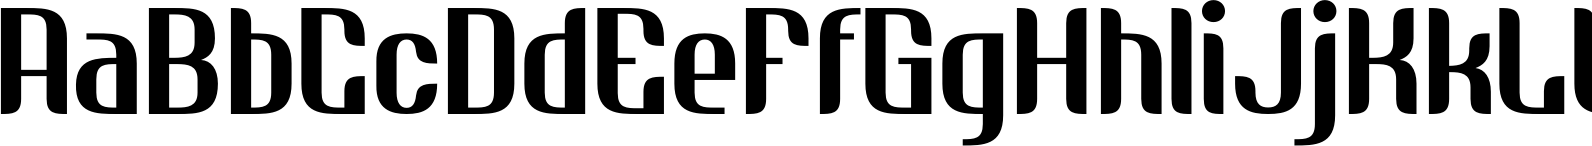 Nudely Regular Duo Font